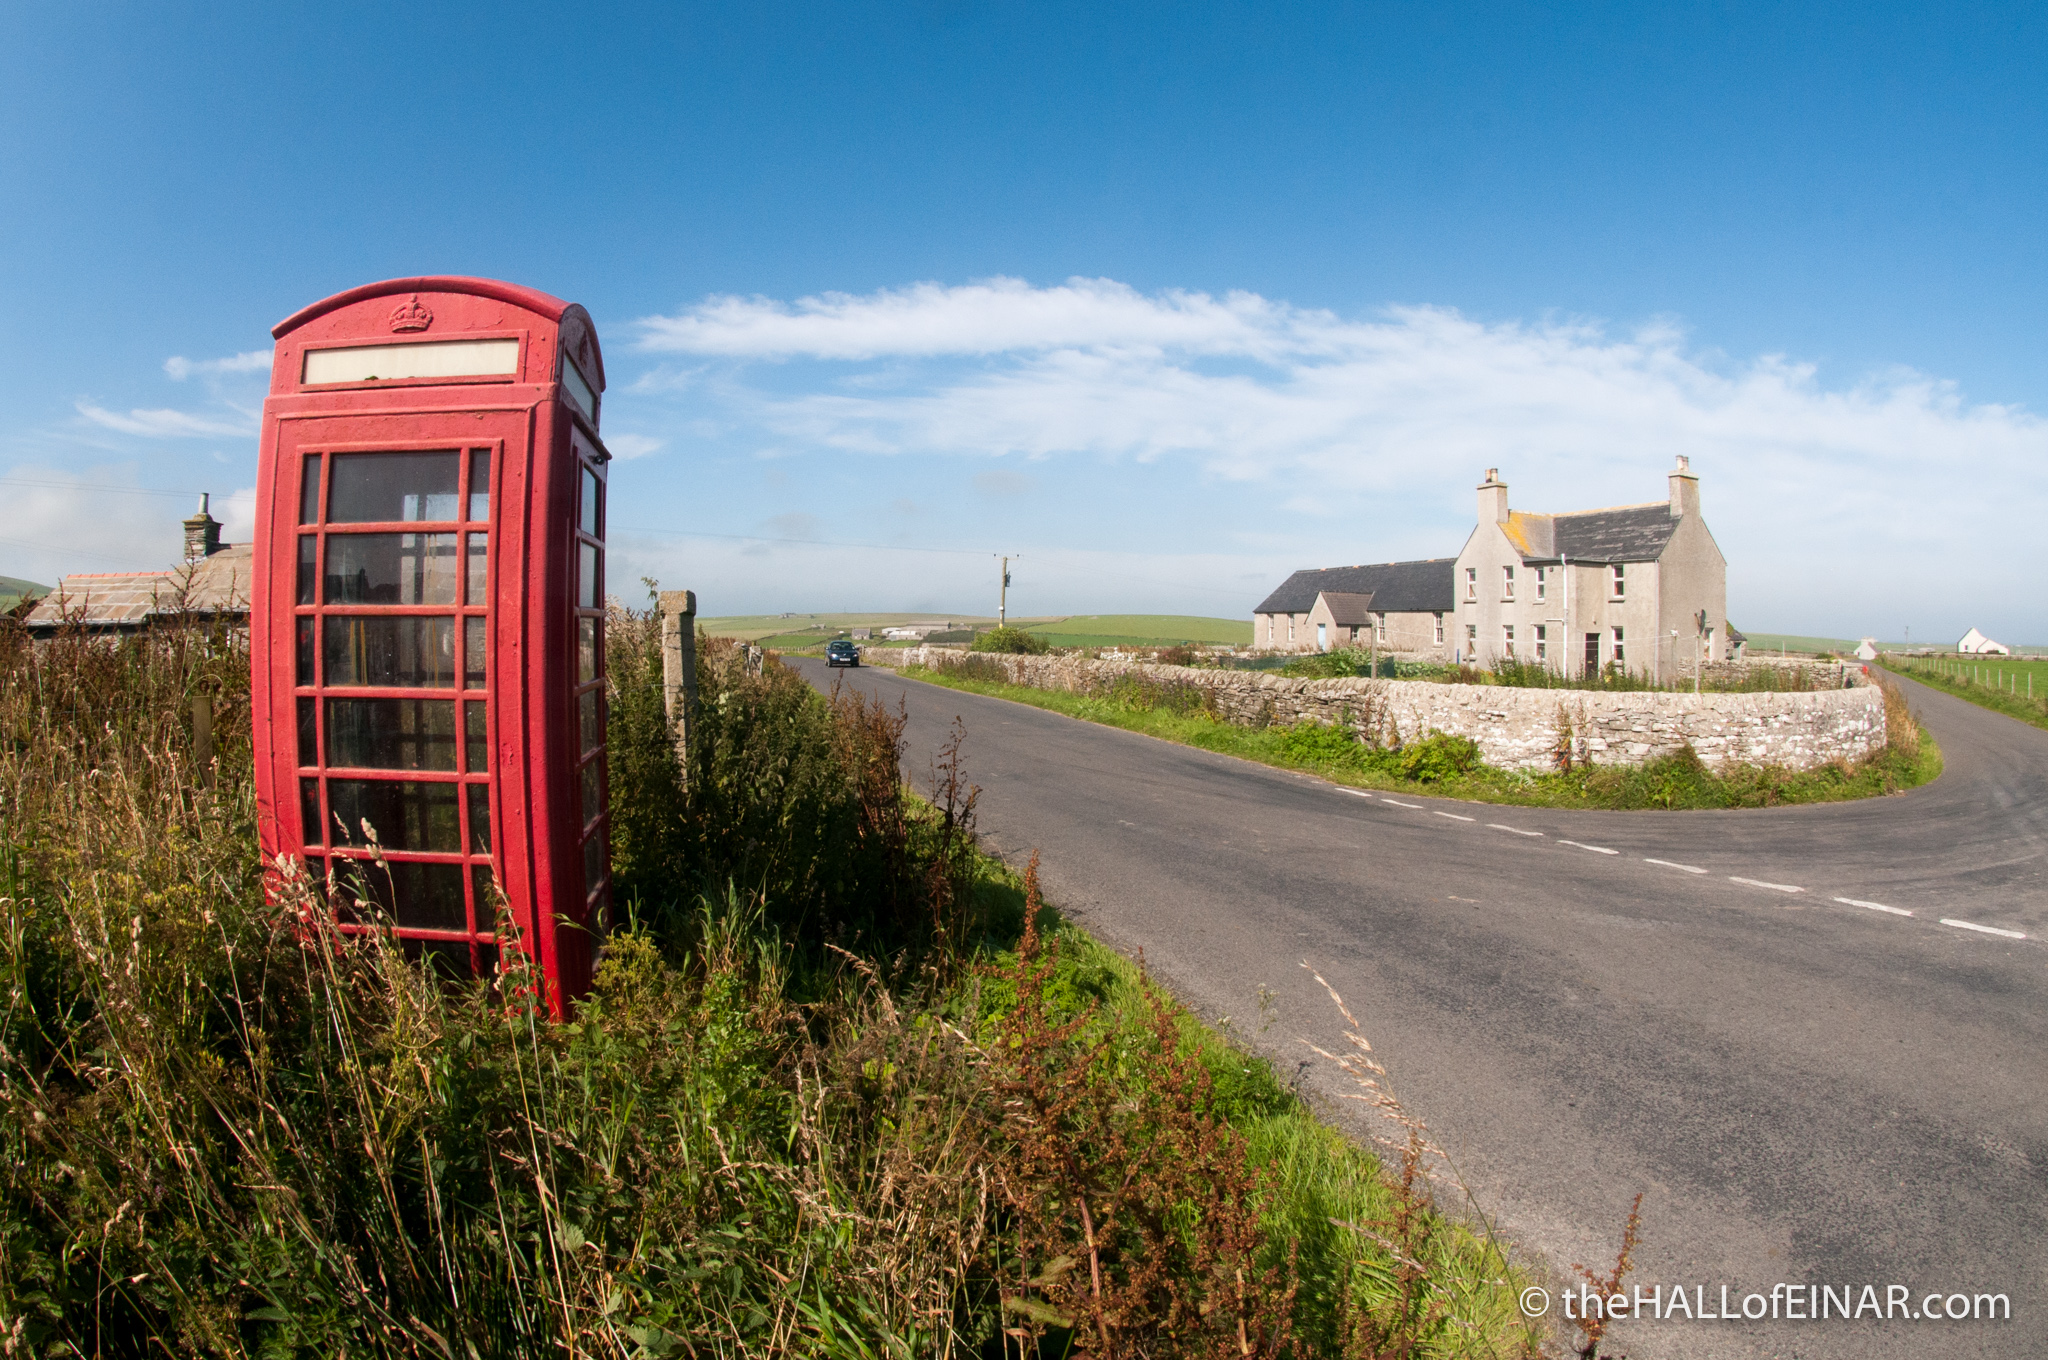 Red telephone box - photograph (c) David Bailey (not the)